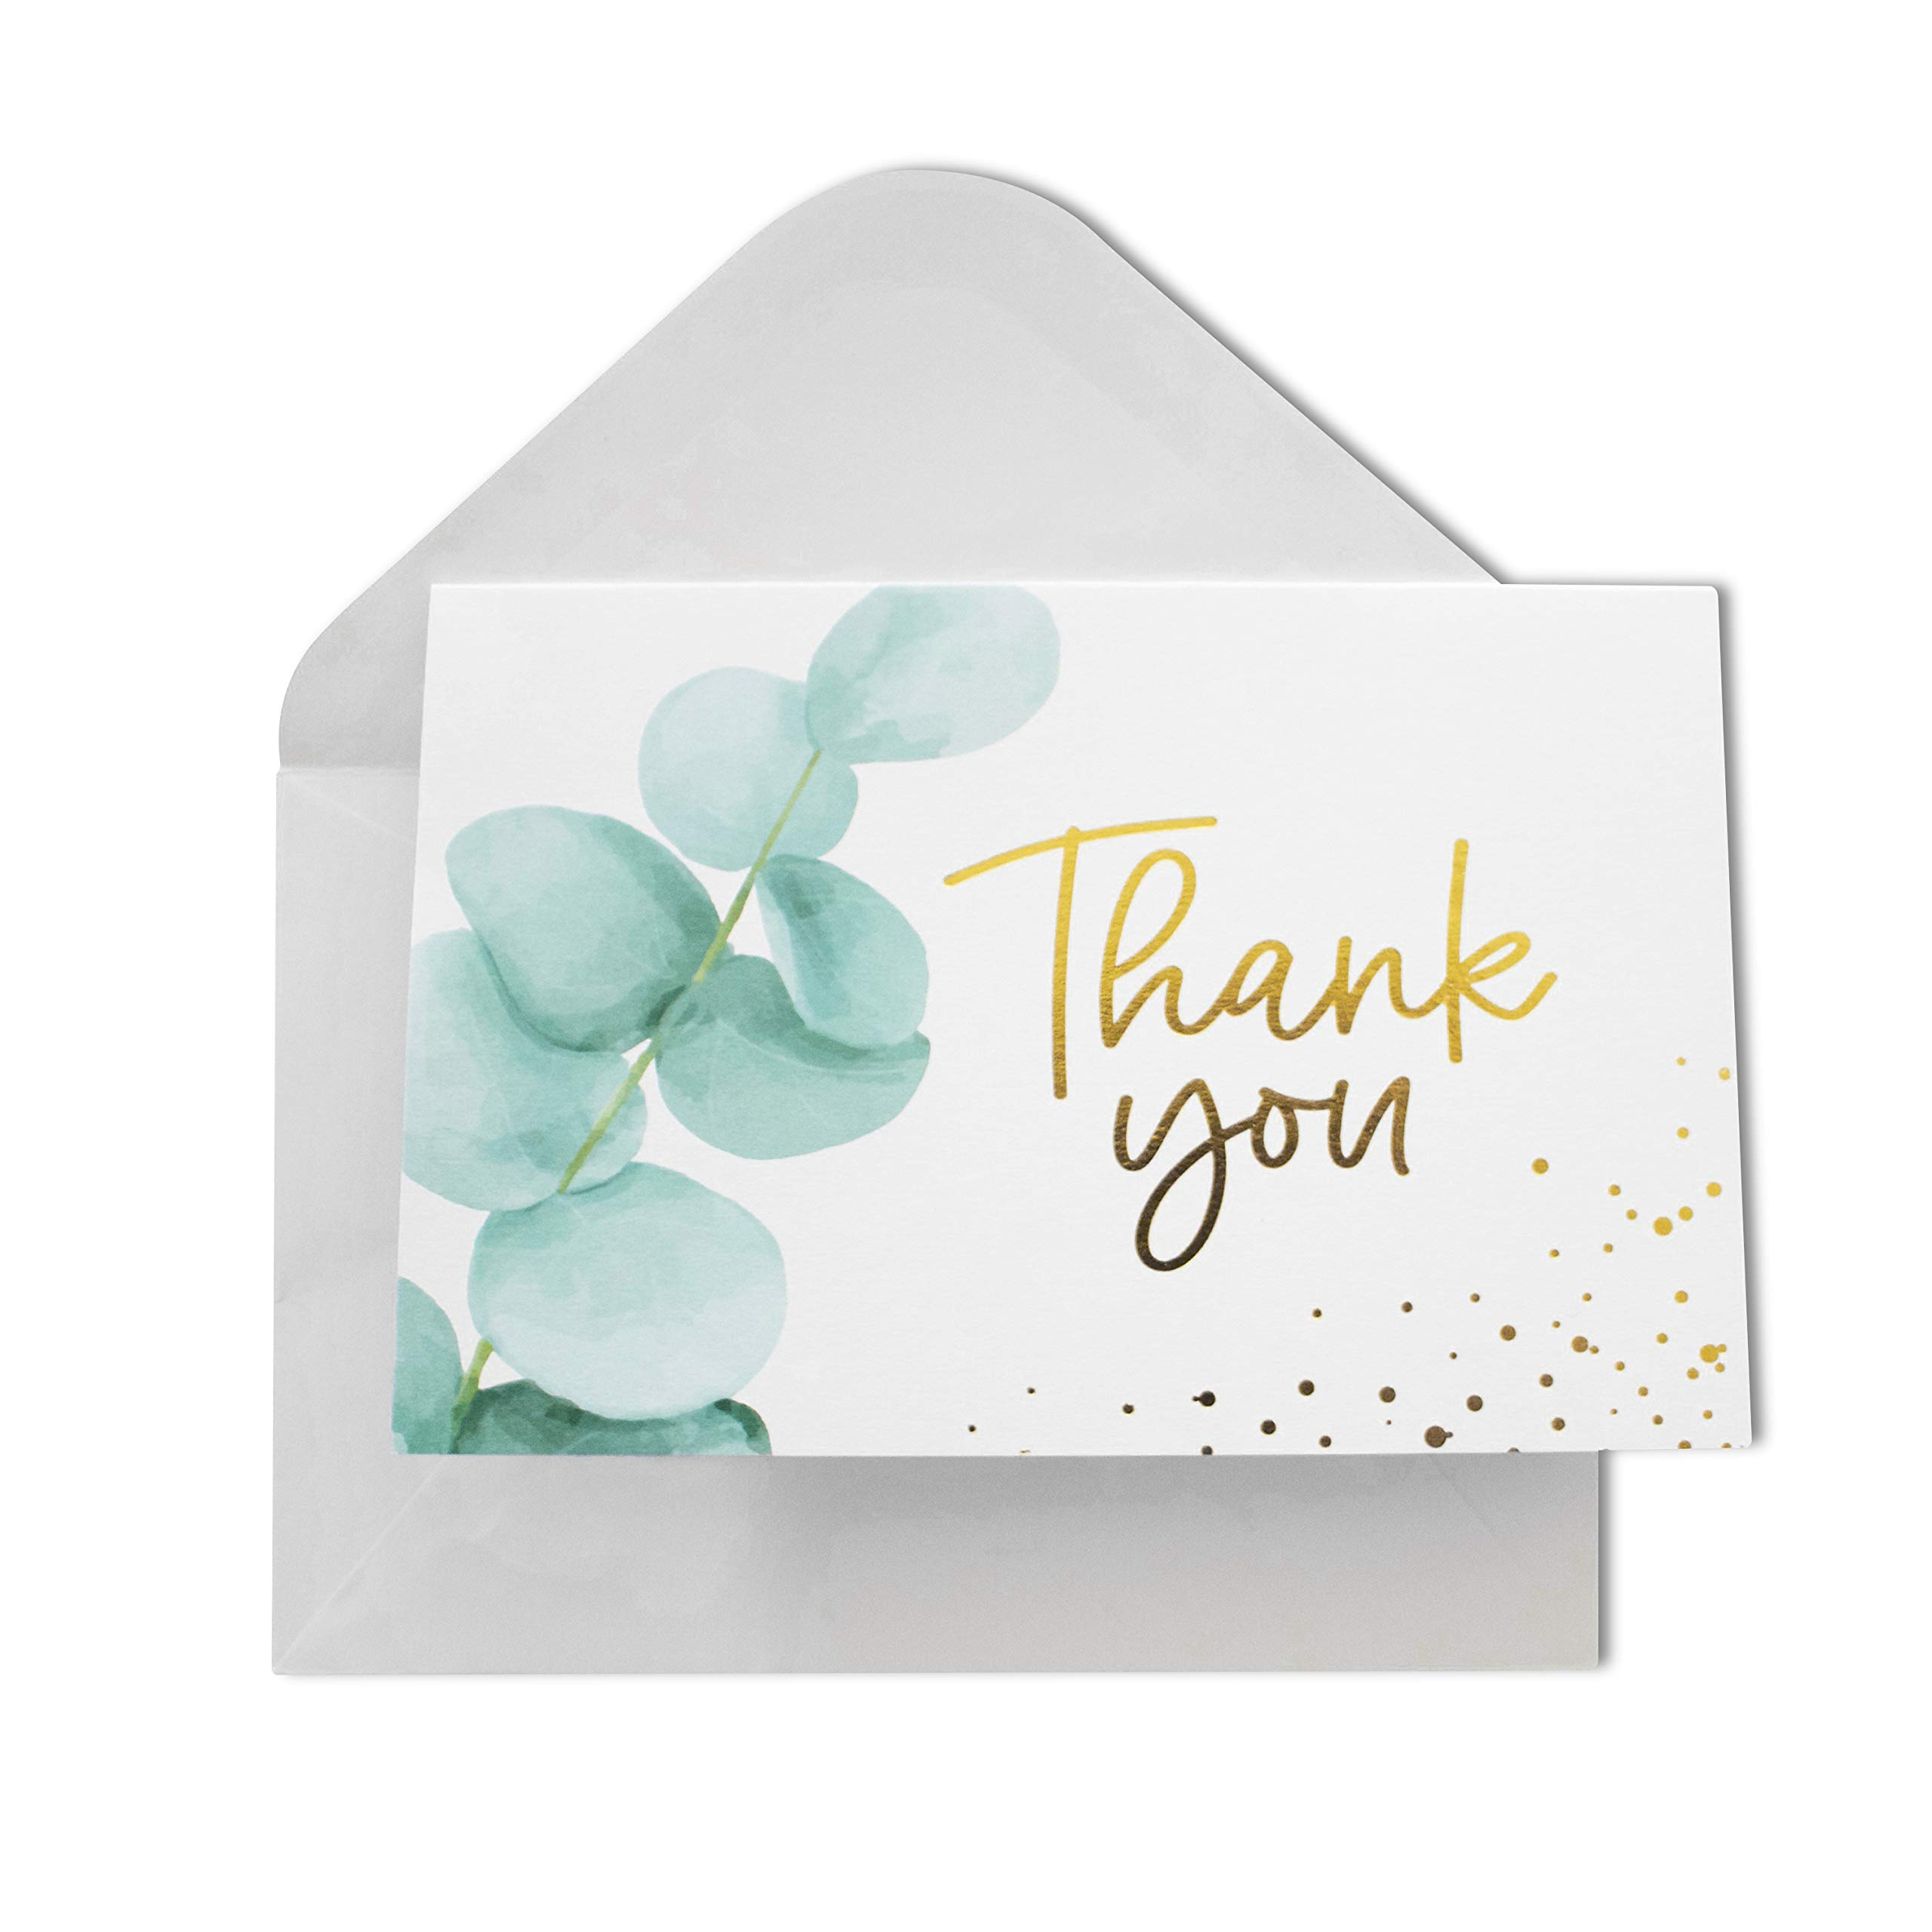 Thank You Cards with Envelopes | 48 Gold Foil Eucalyptus | Wedding, Bridal Shower, Baby Shower Cards 4x6 inches by Olive & Emma